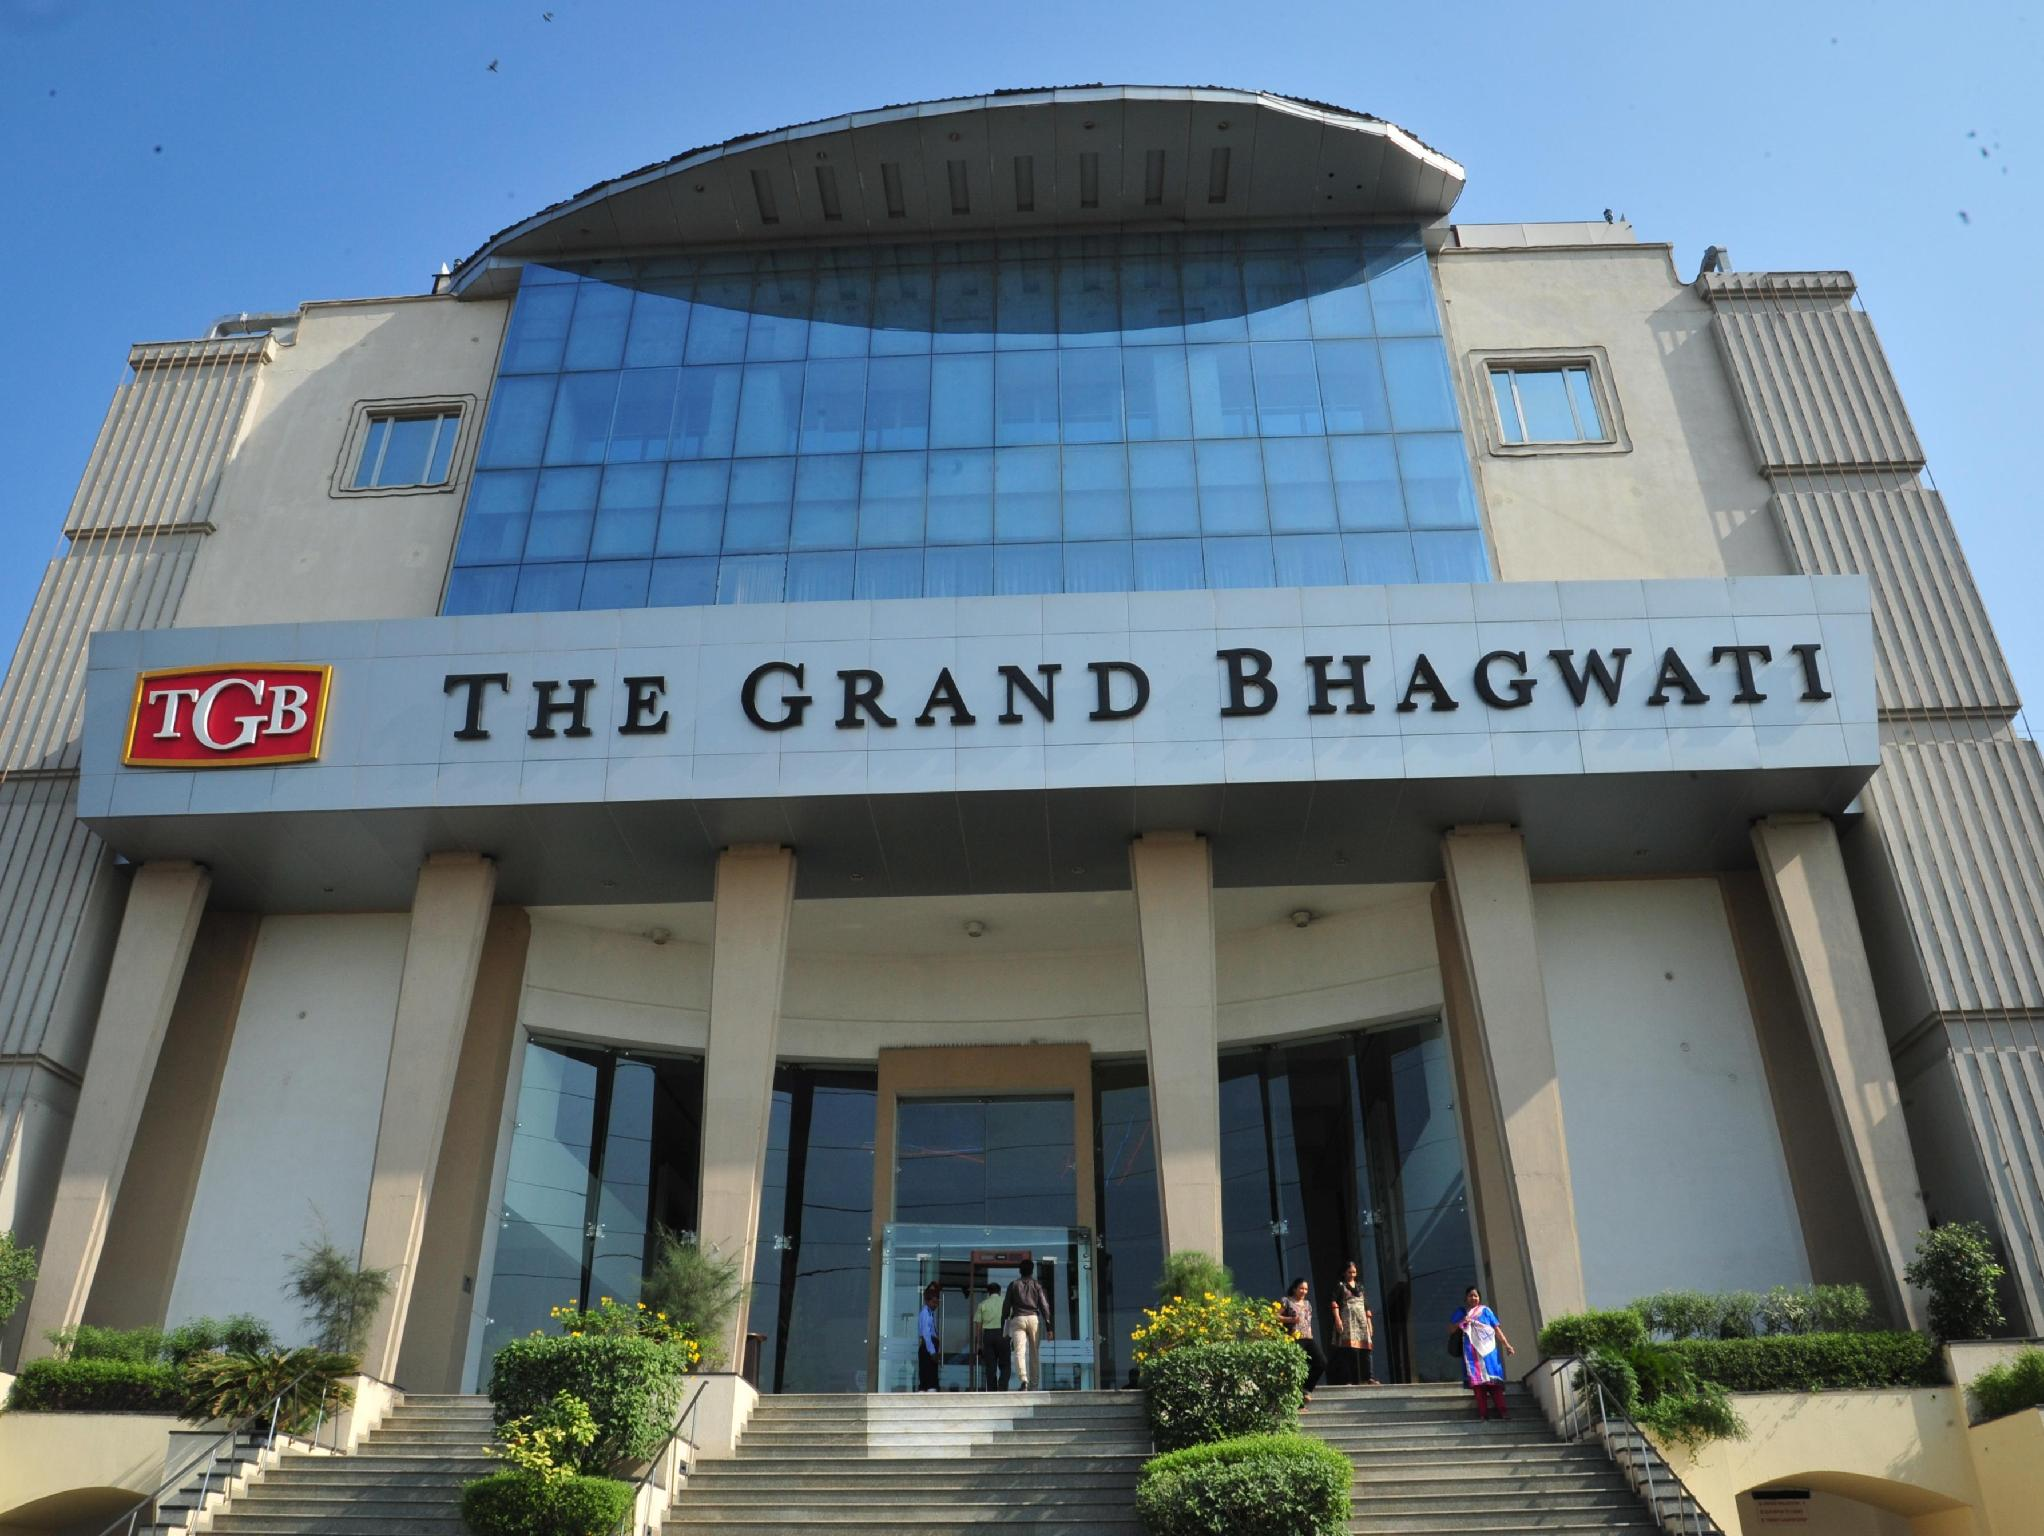 The Grand Bhagwati Hotel Ahmedabad - Hotel and accommodation in India in Ahmedabad